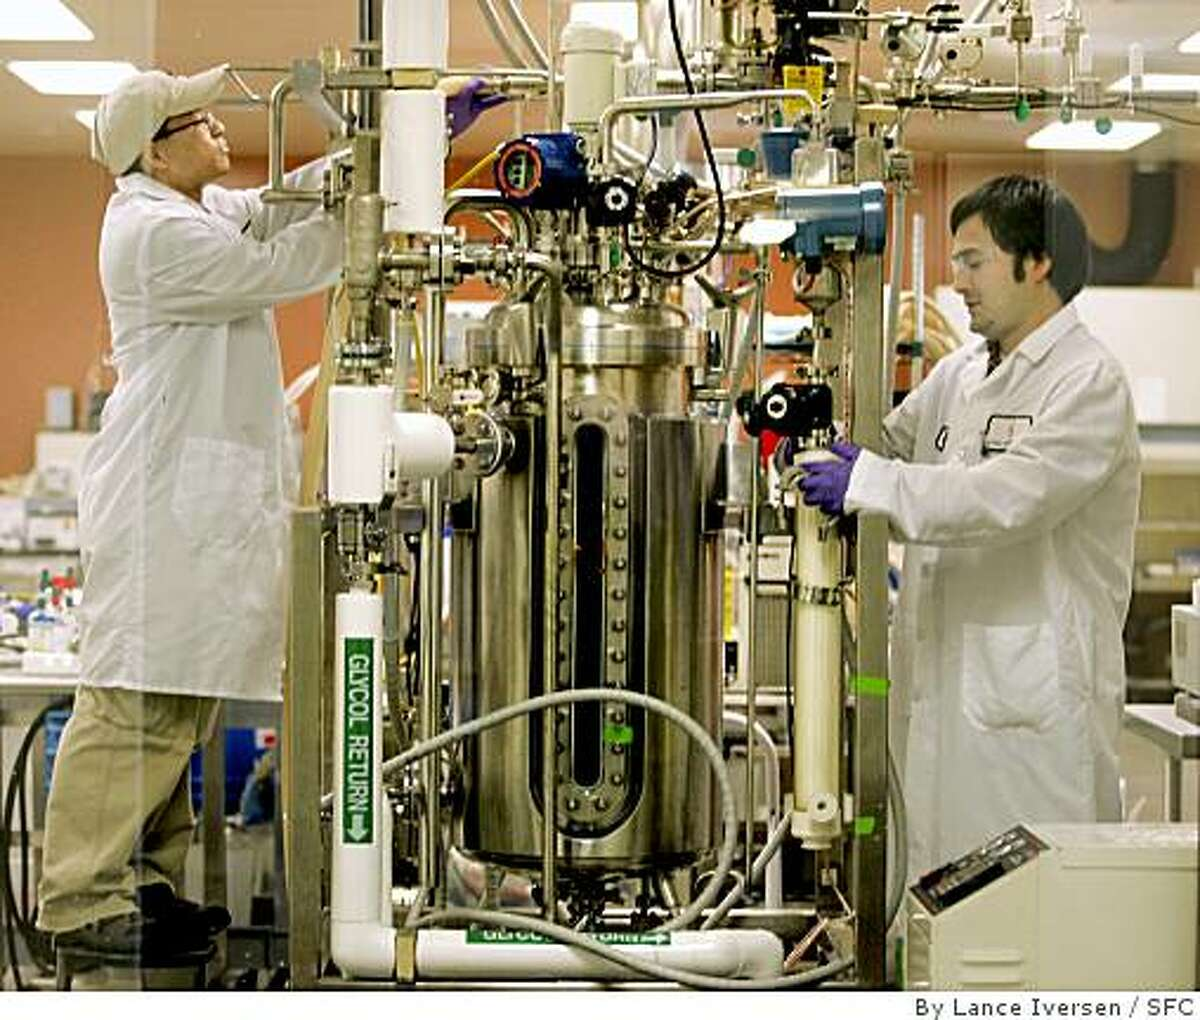 Technicians David Cheung and Jeff Norman work on a Bio Reactor at Cell Genesys, a South San Francisco biotech pharmaceutical company that develops health-care drugs.